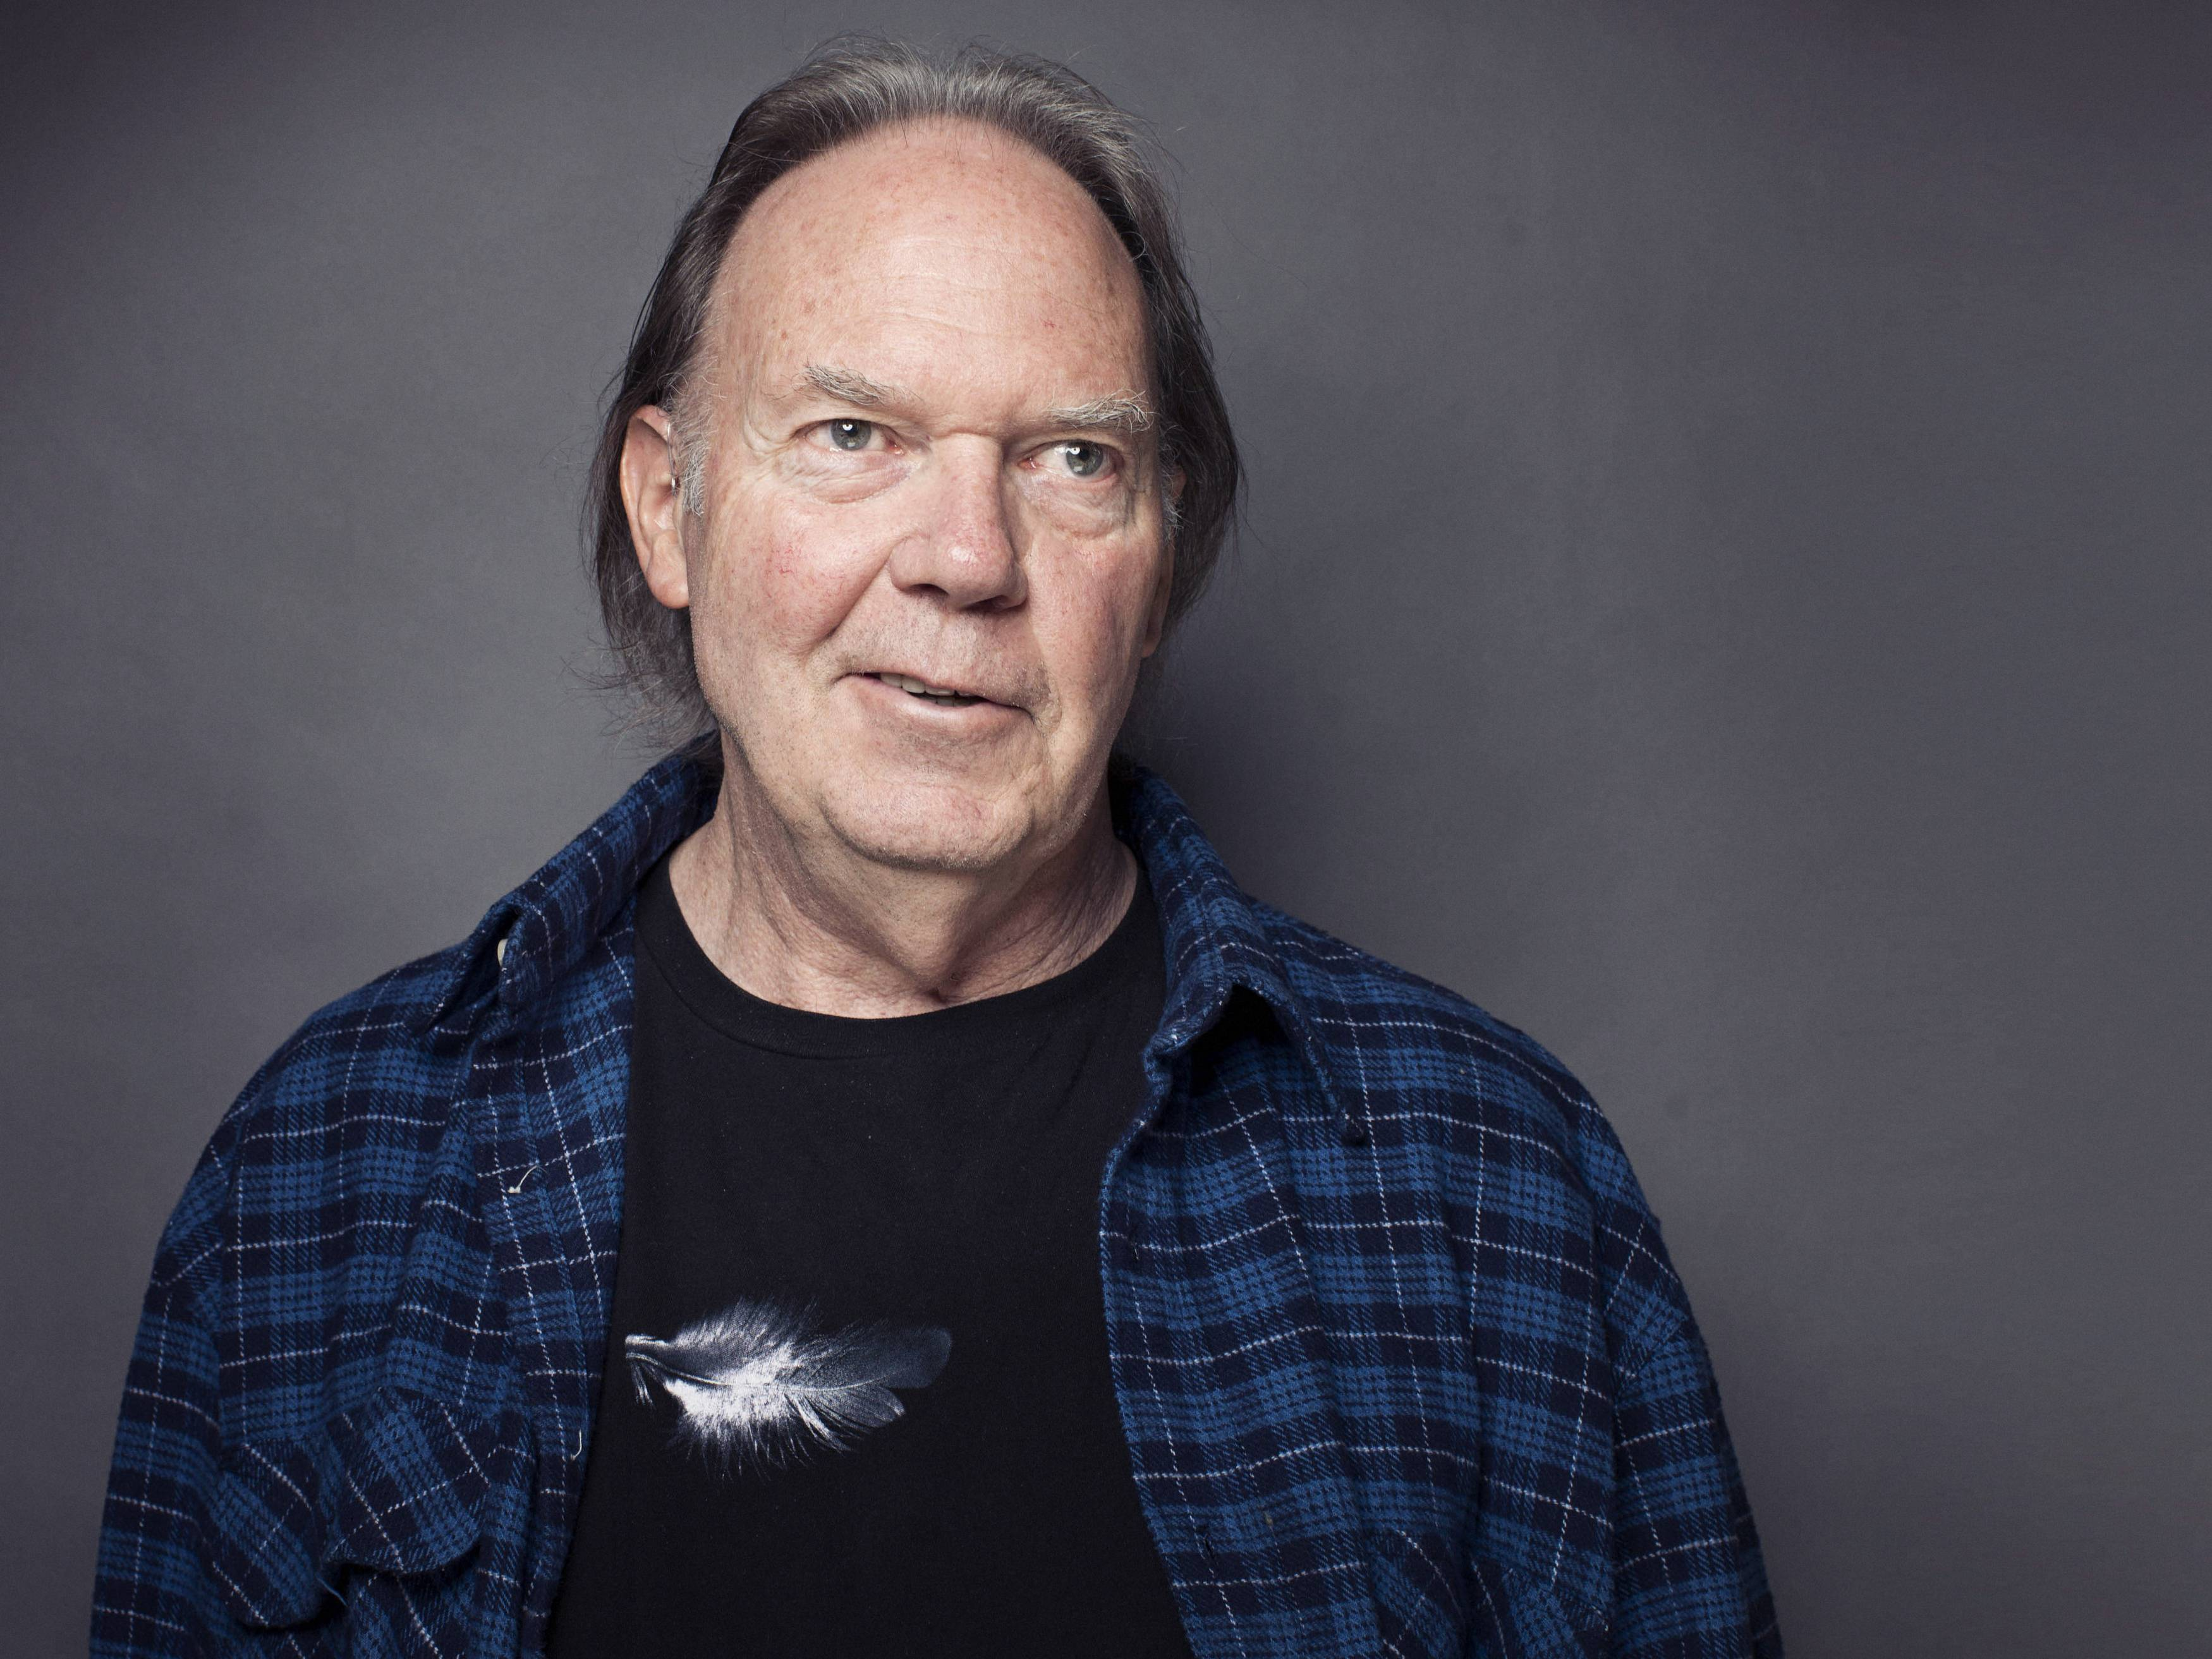 This 2012 file photo shows singer-songwriter Neil Young posing for a portrait at The Carlyle hotel in New York. Young has raised more than $6 million through a Kickstarter campaign to fund his digital music project PonoMusic. Kickstarter closed the campaign Tuesday after raising 6.2 million through 18,000 supporters. The campaign is the third most funded project for Kickstarter.